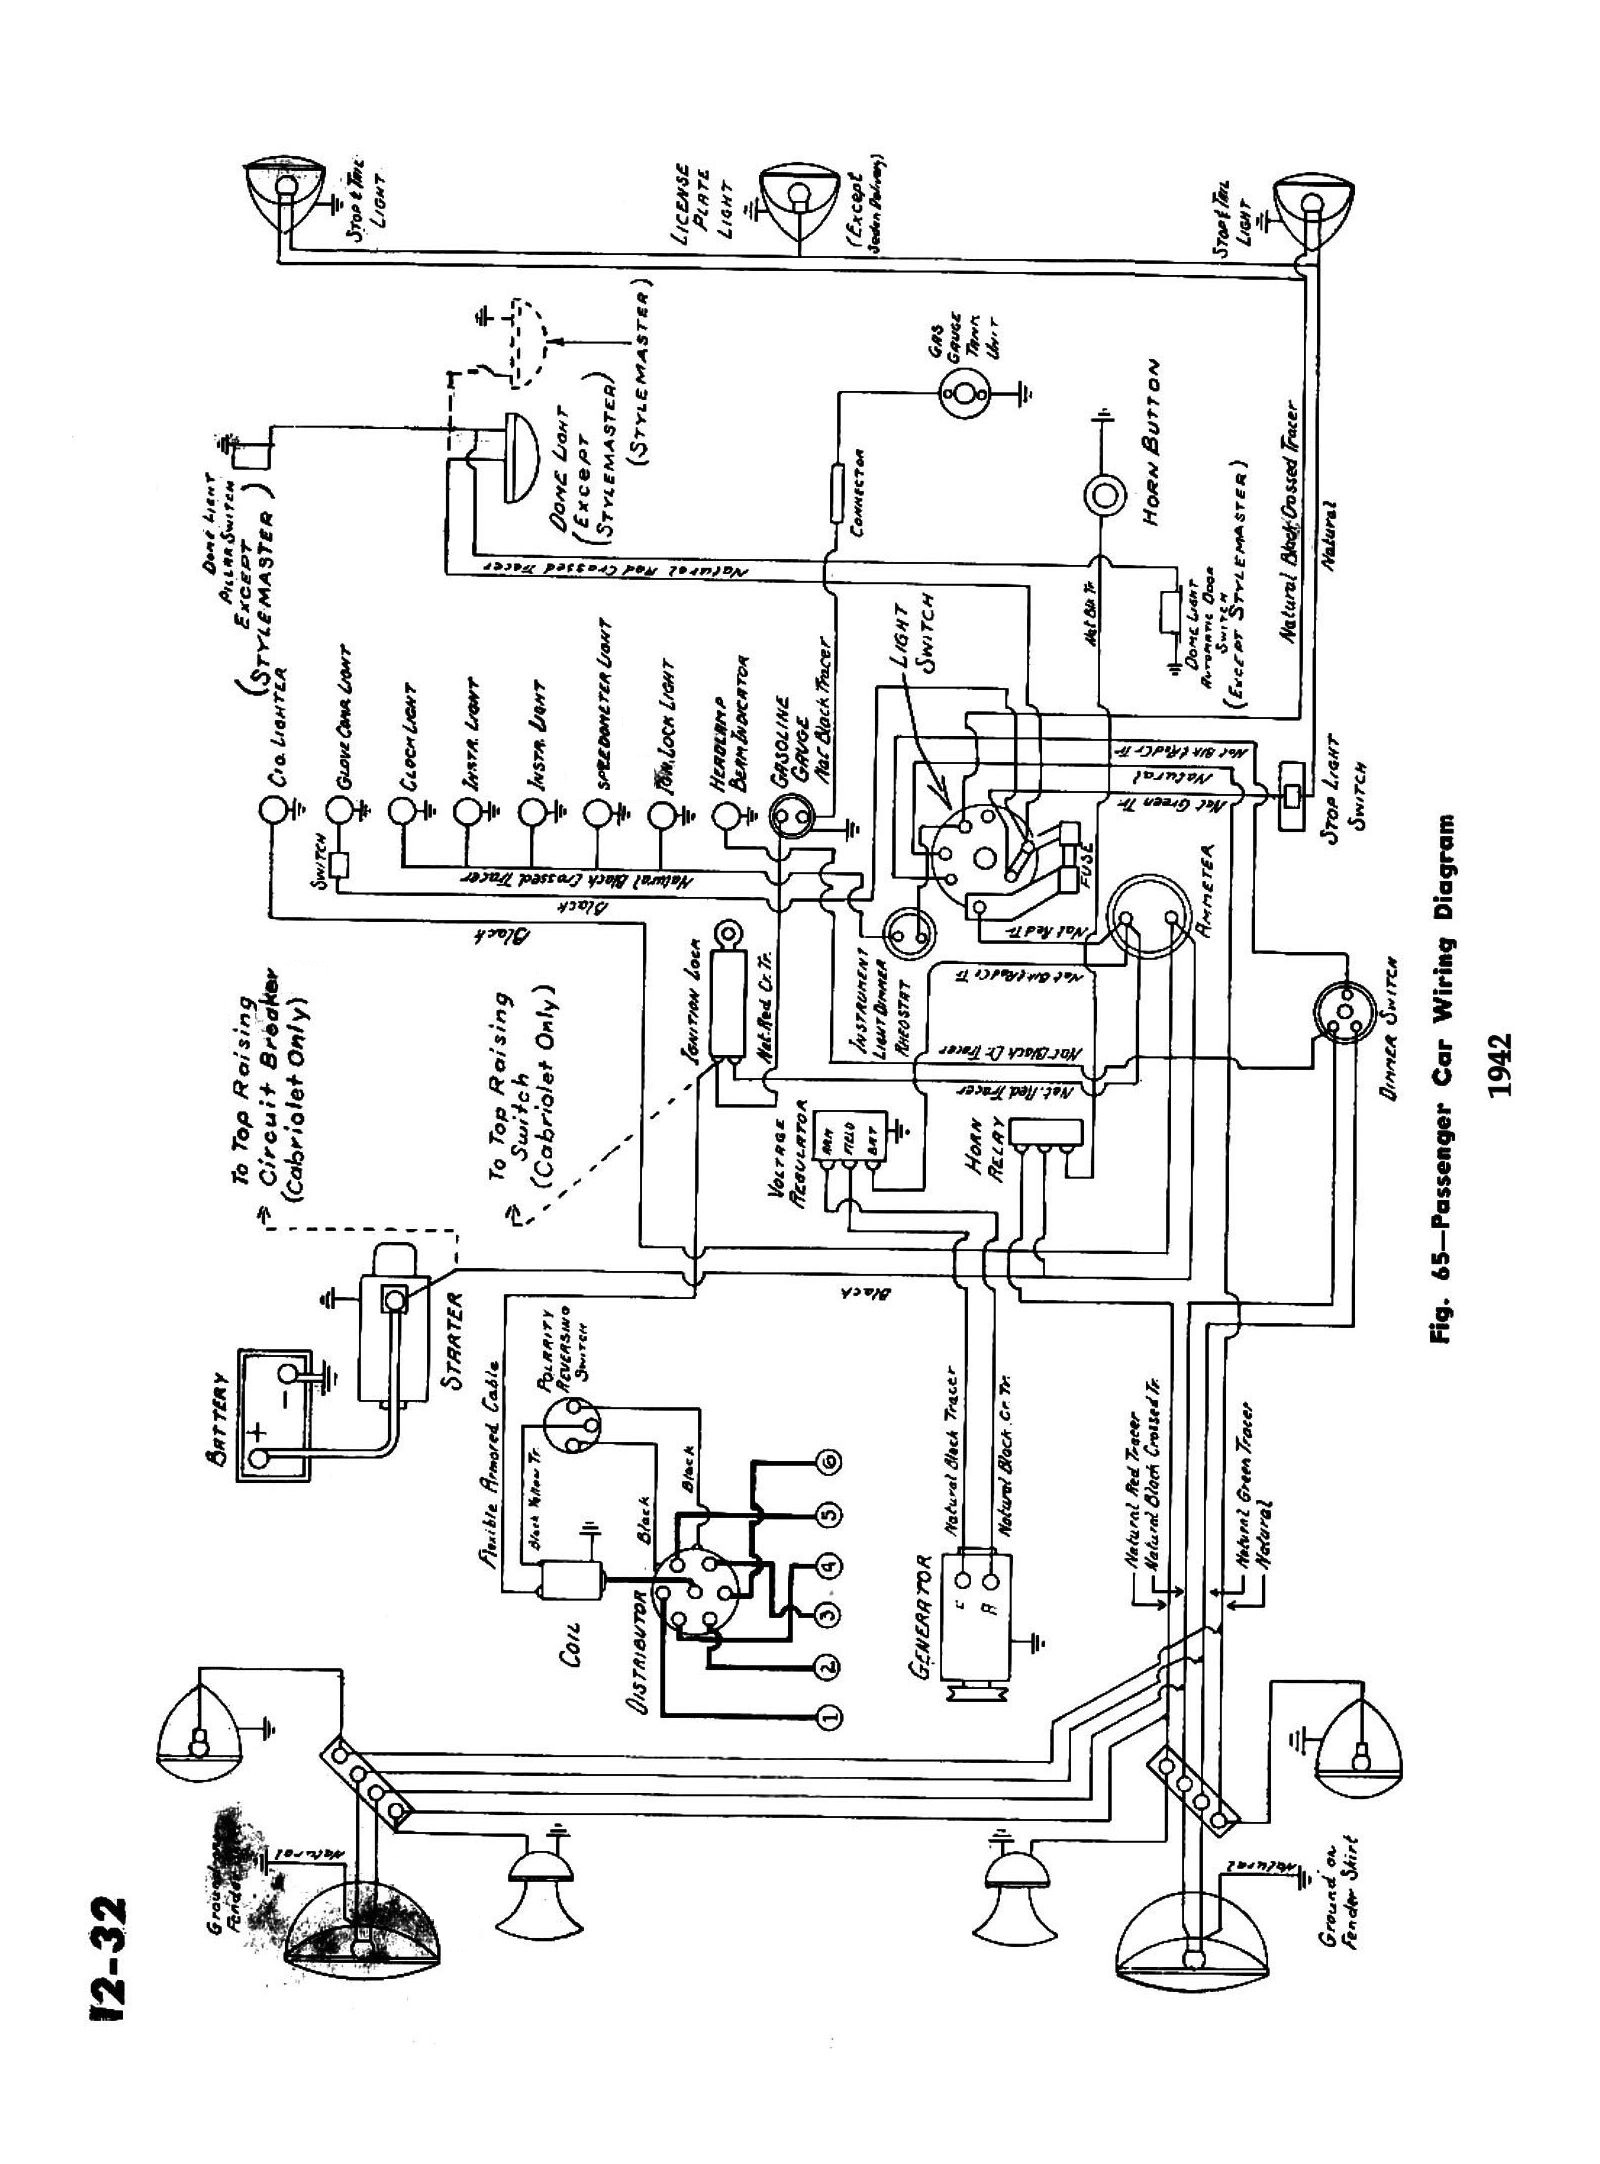 1950 Chevy Truck Ignition Wiring Data Wiring Schema OMC Ignition Switch Wiring  Diagram 1970 Chevy Truck Ignition Wiring Diagram